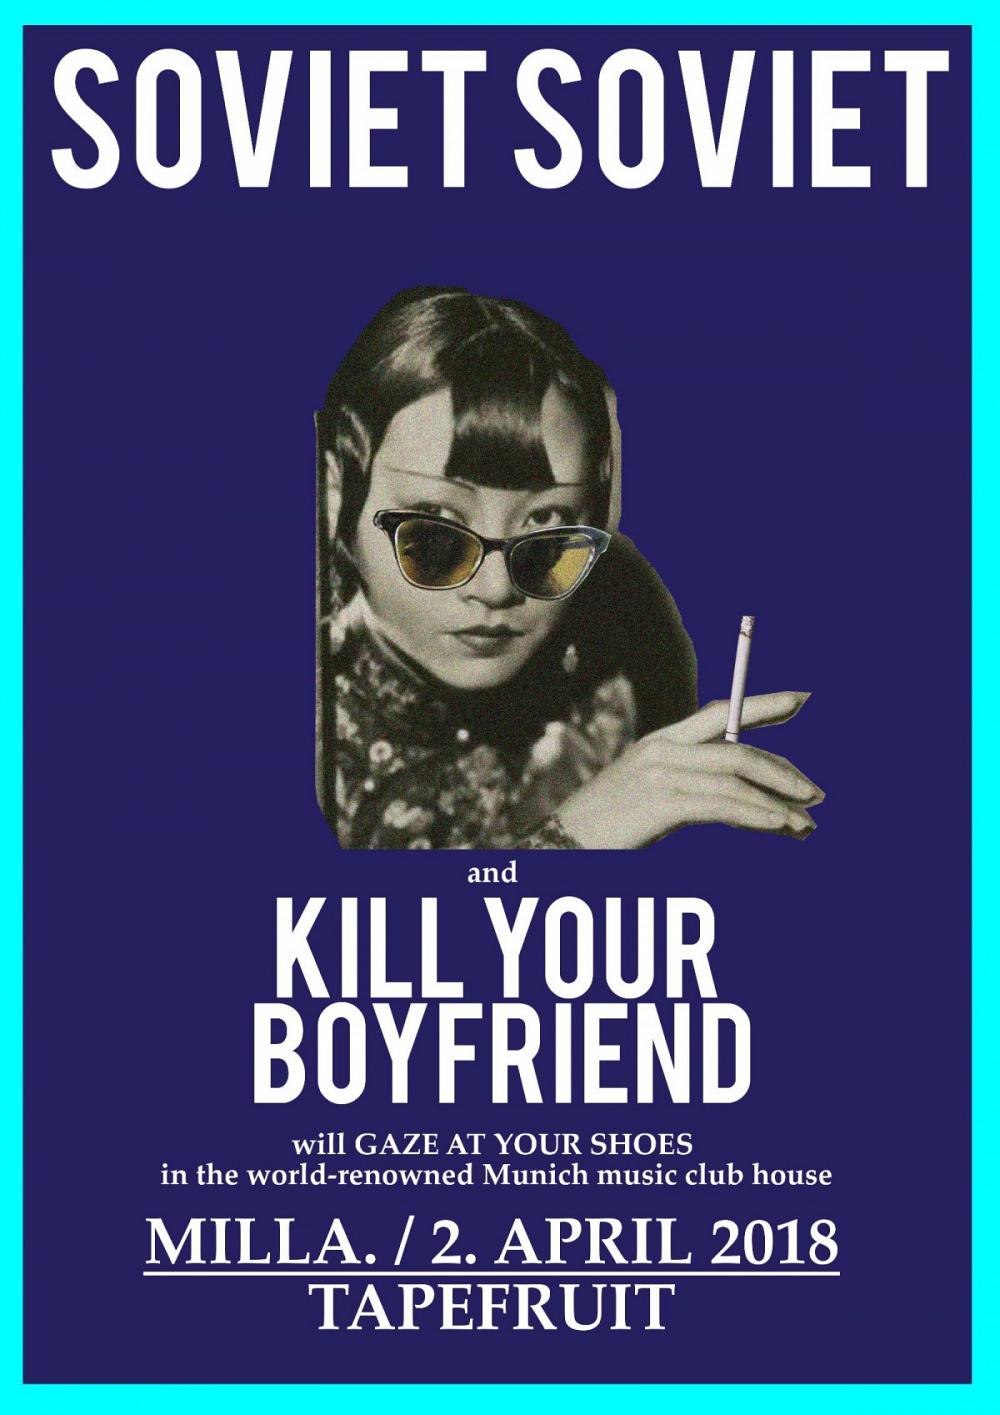 Tapefruit Konzert: Soviet Soviet + Kill Your Boyfriend | 02.04.2018 @ Milla Club